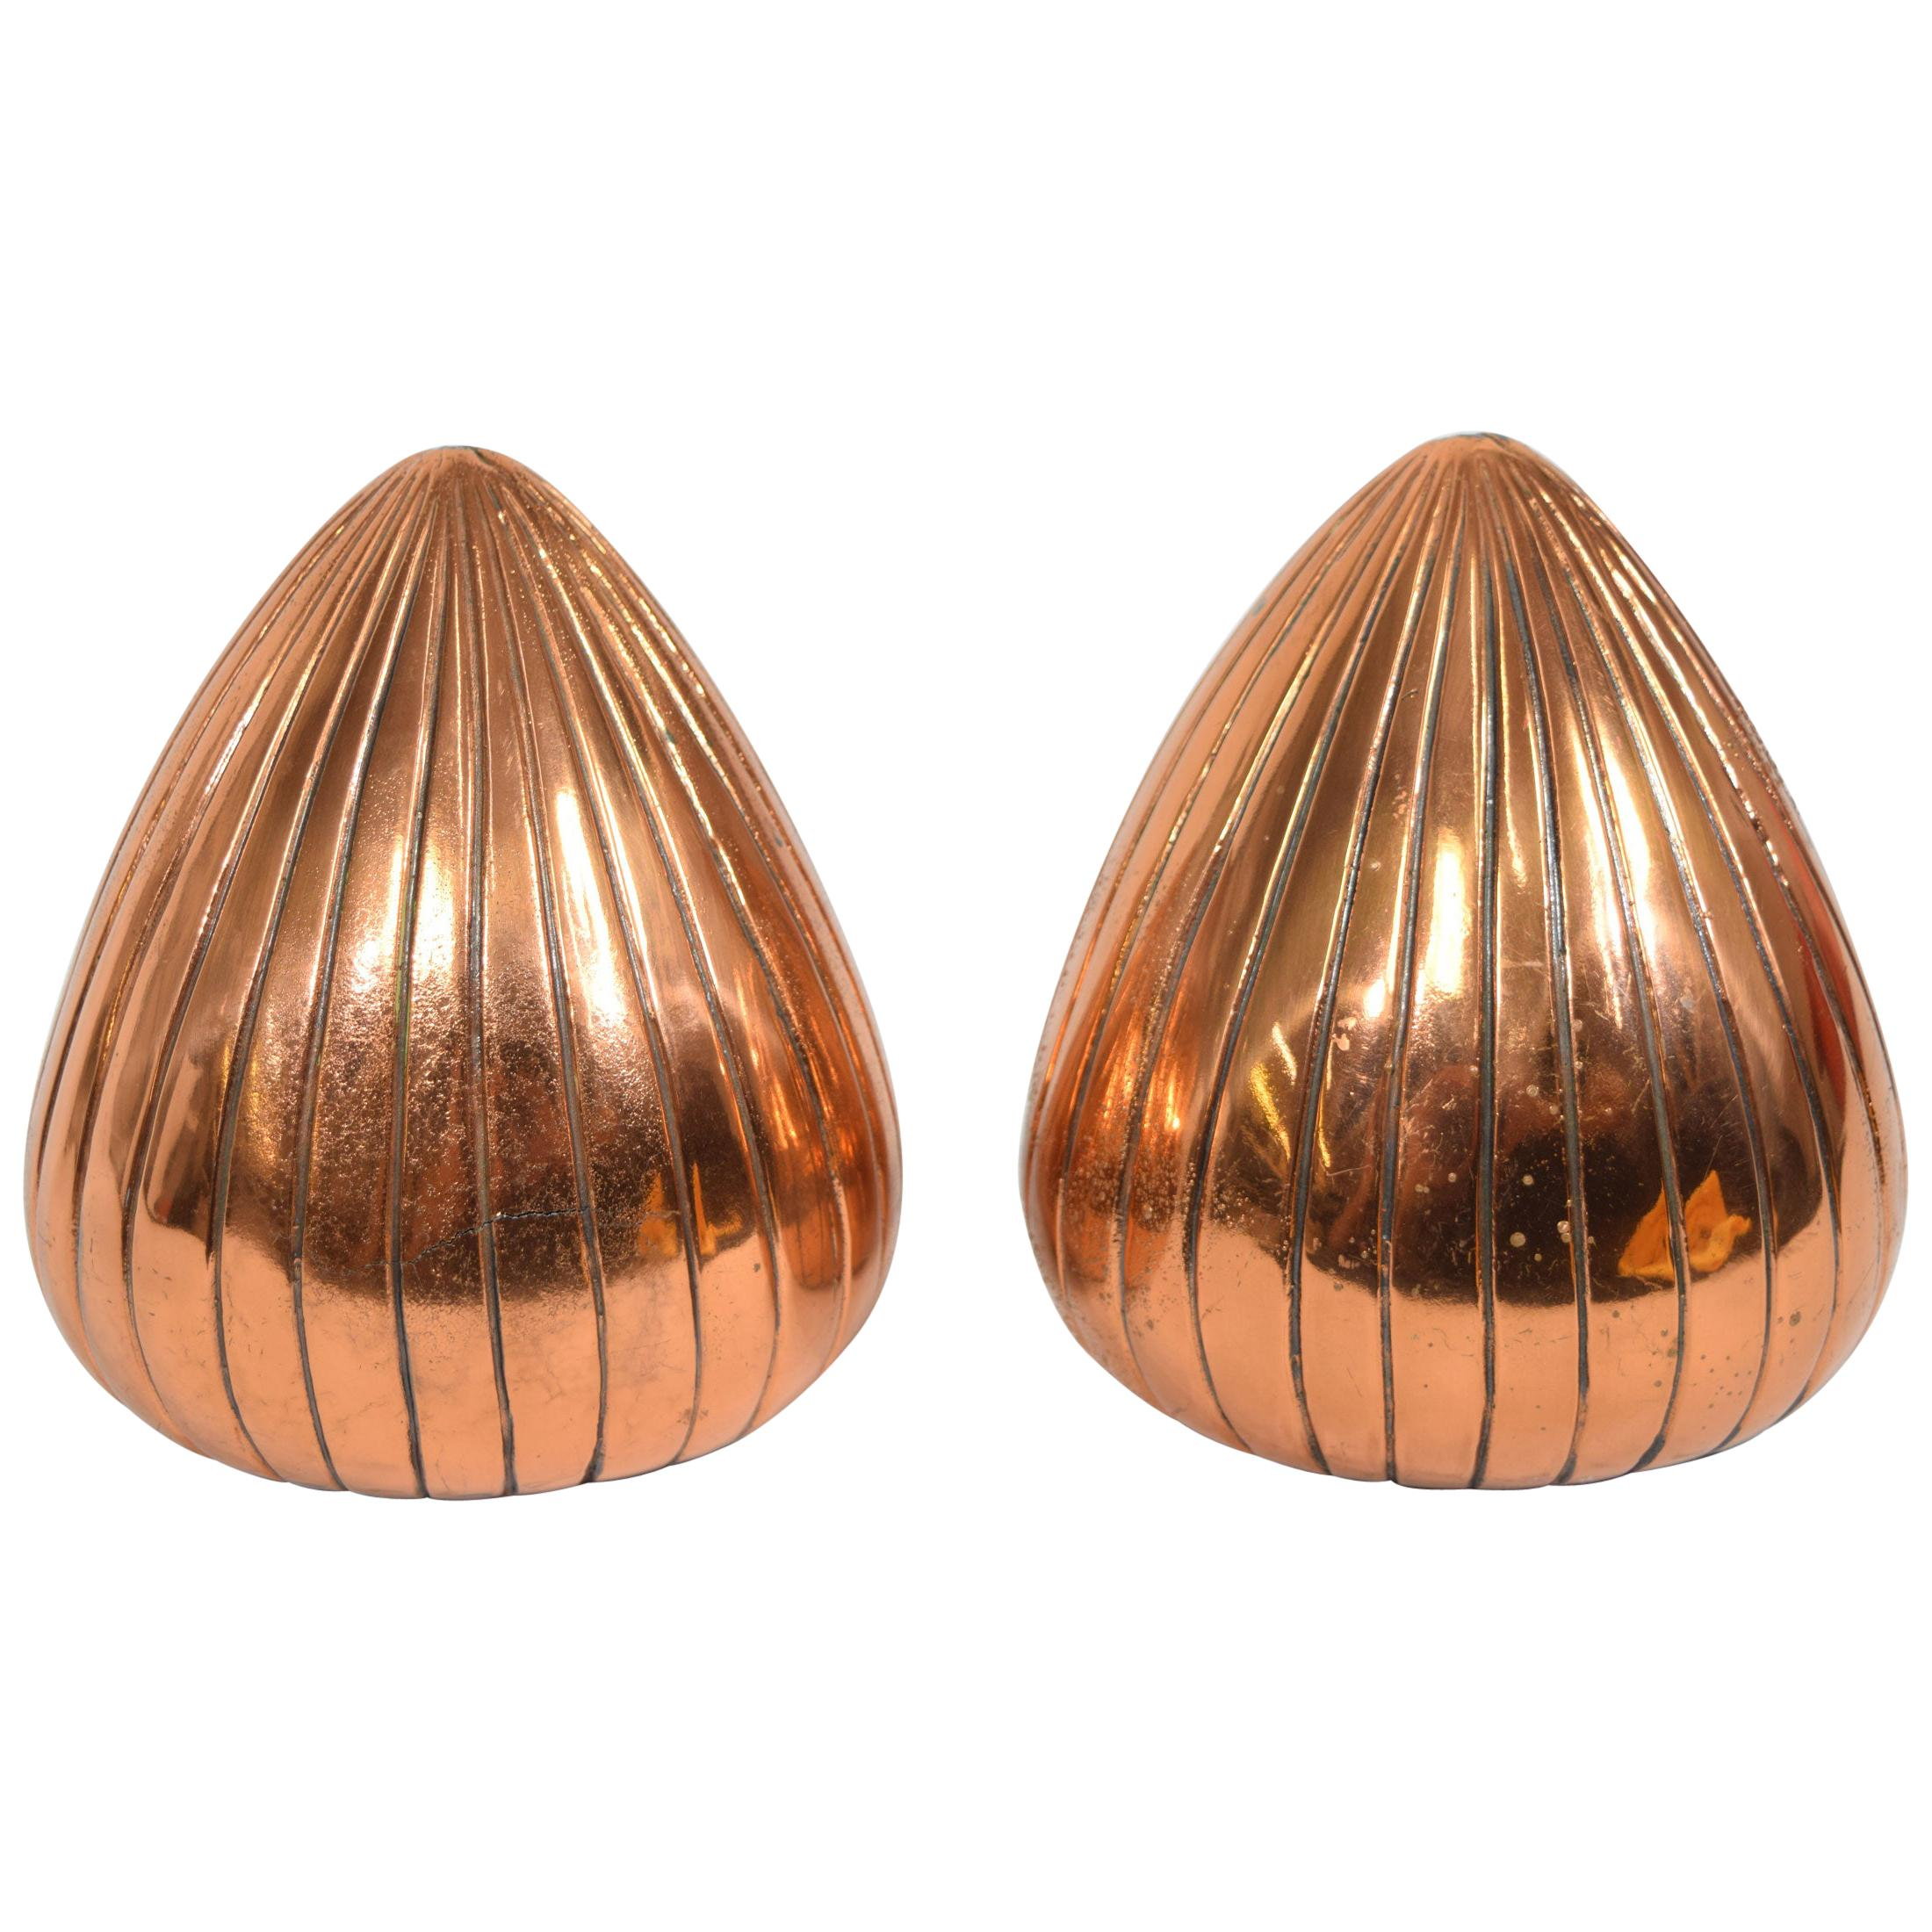 """Ben Seibel """"Clam"""" Bookends in a Copper Finish"""